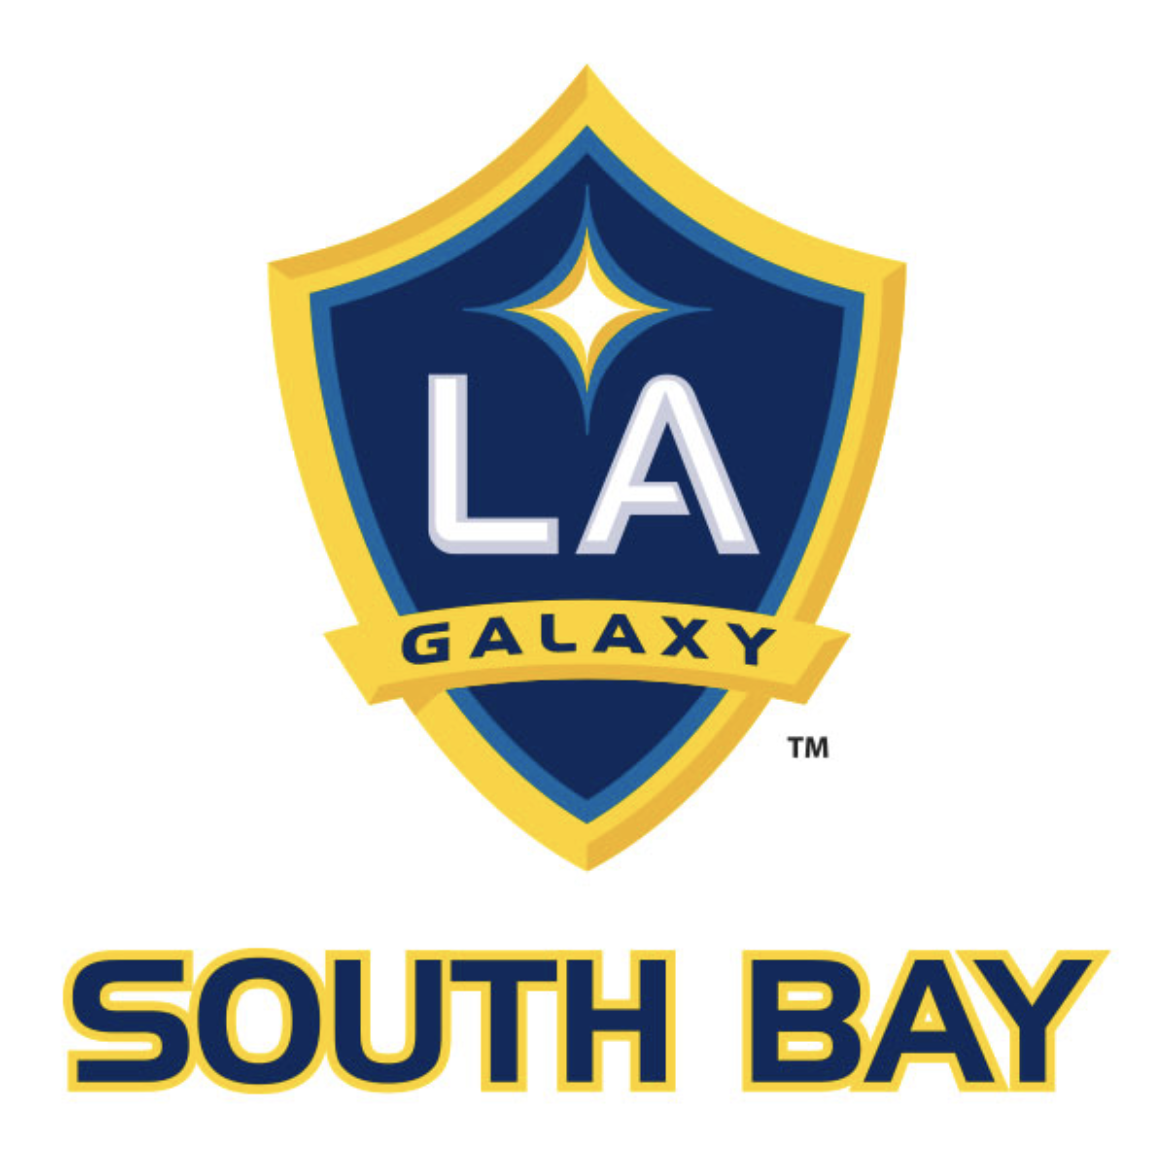 LA GALAXY SOUTH BAY B04 ELITE